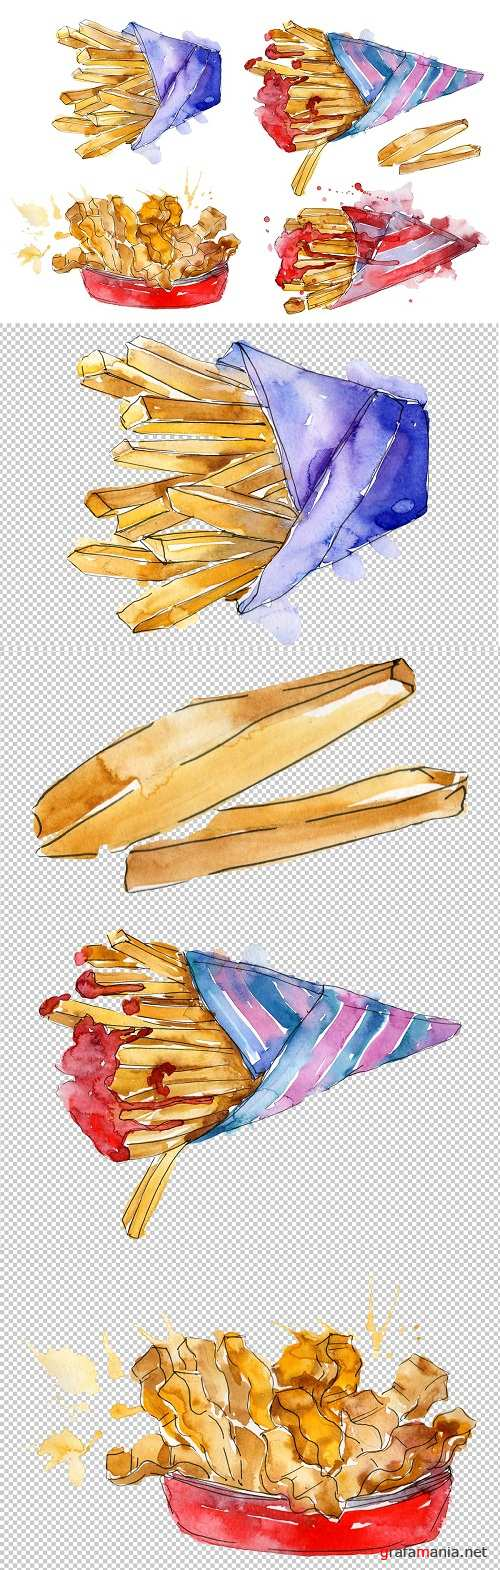 French fries Watercolor png - 3464202